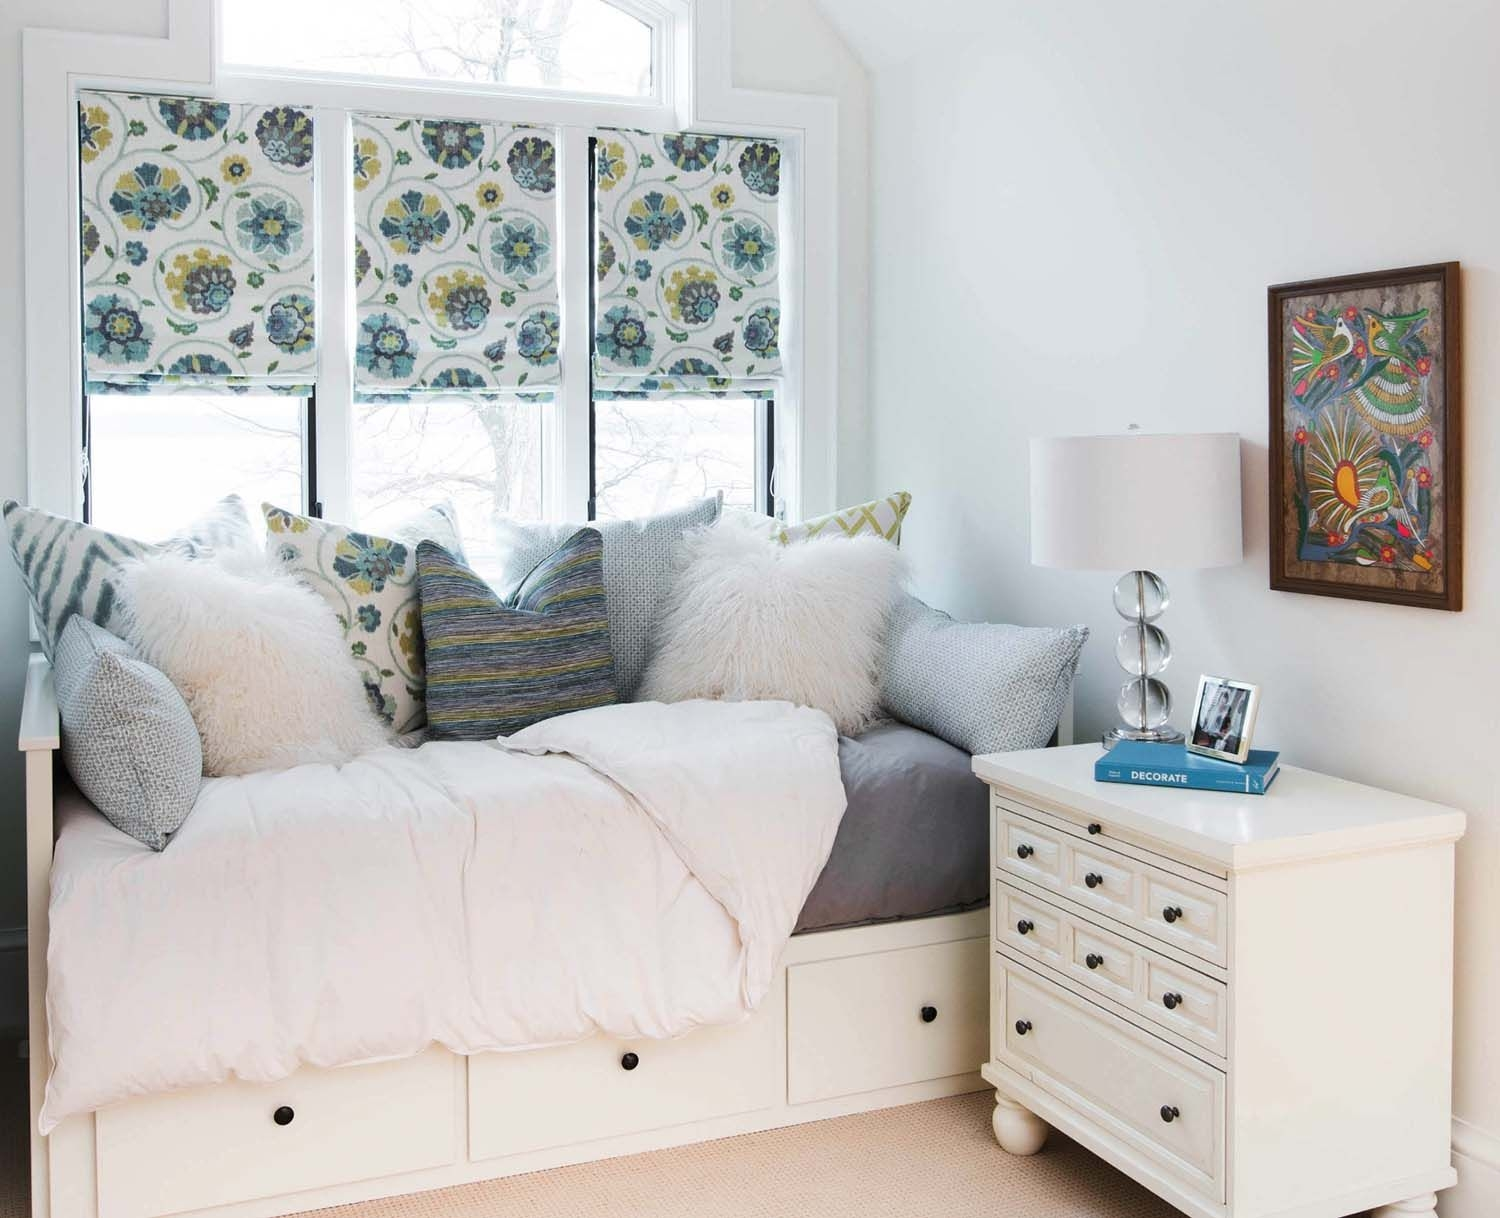 46 amazing tiny bedrooms youll dream of sleeping in bedrooms